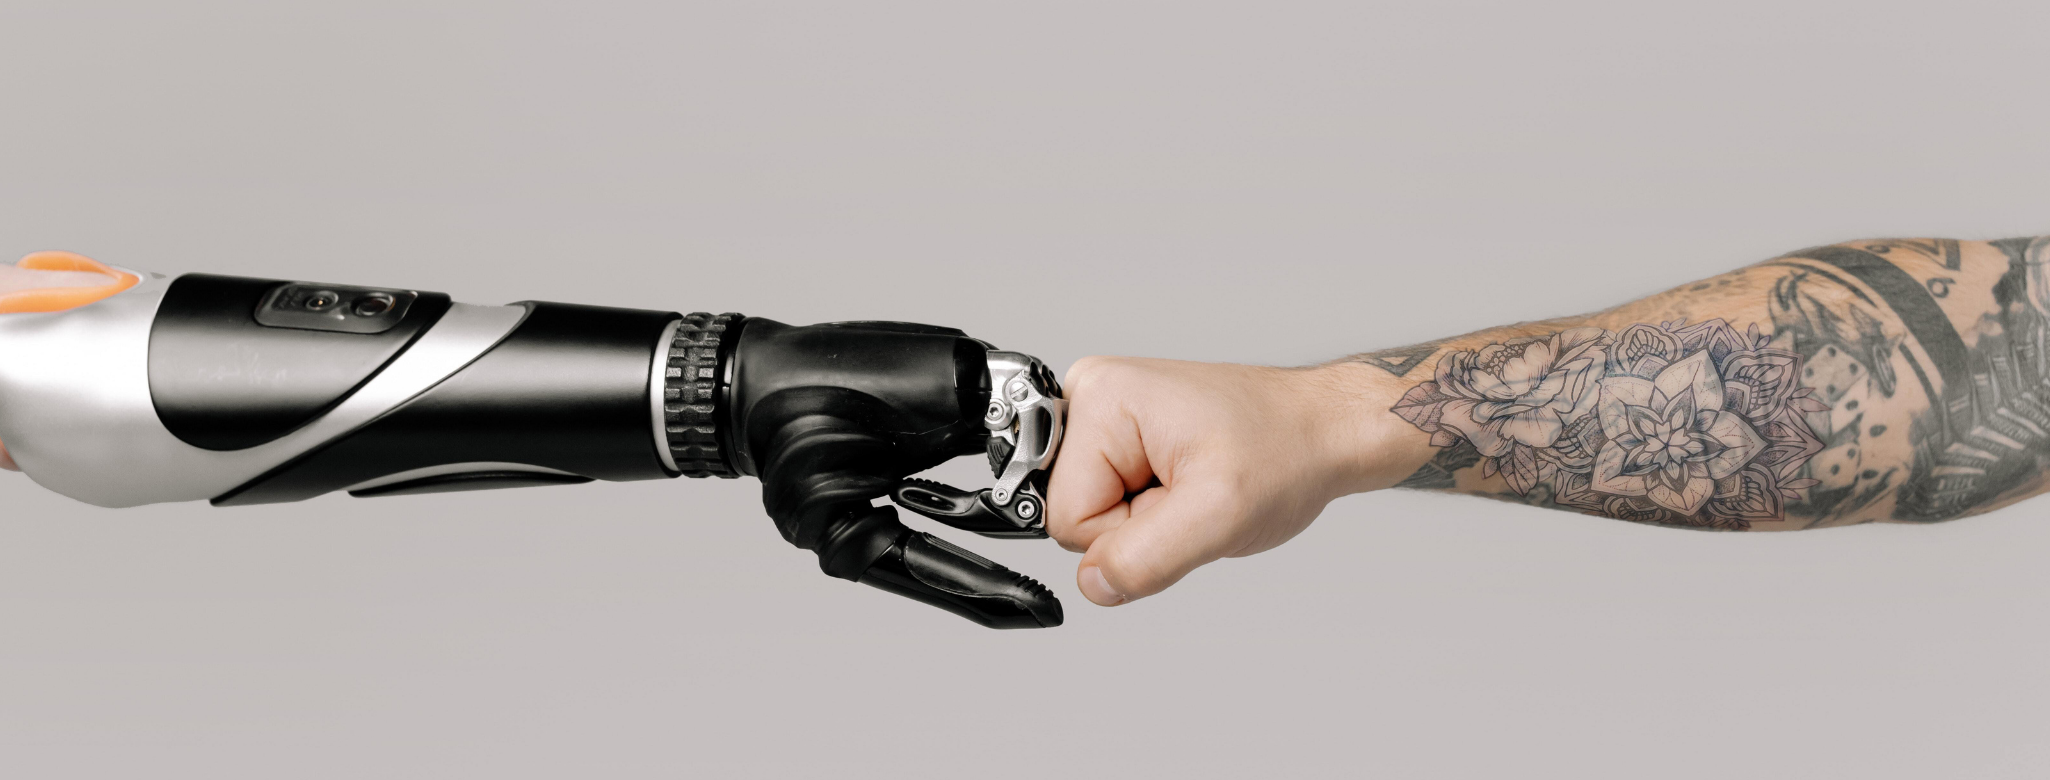 DOES THE SINGULARITY NEED A MAKEOVER?